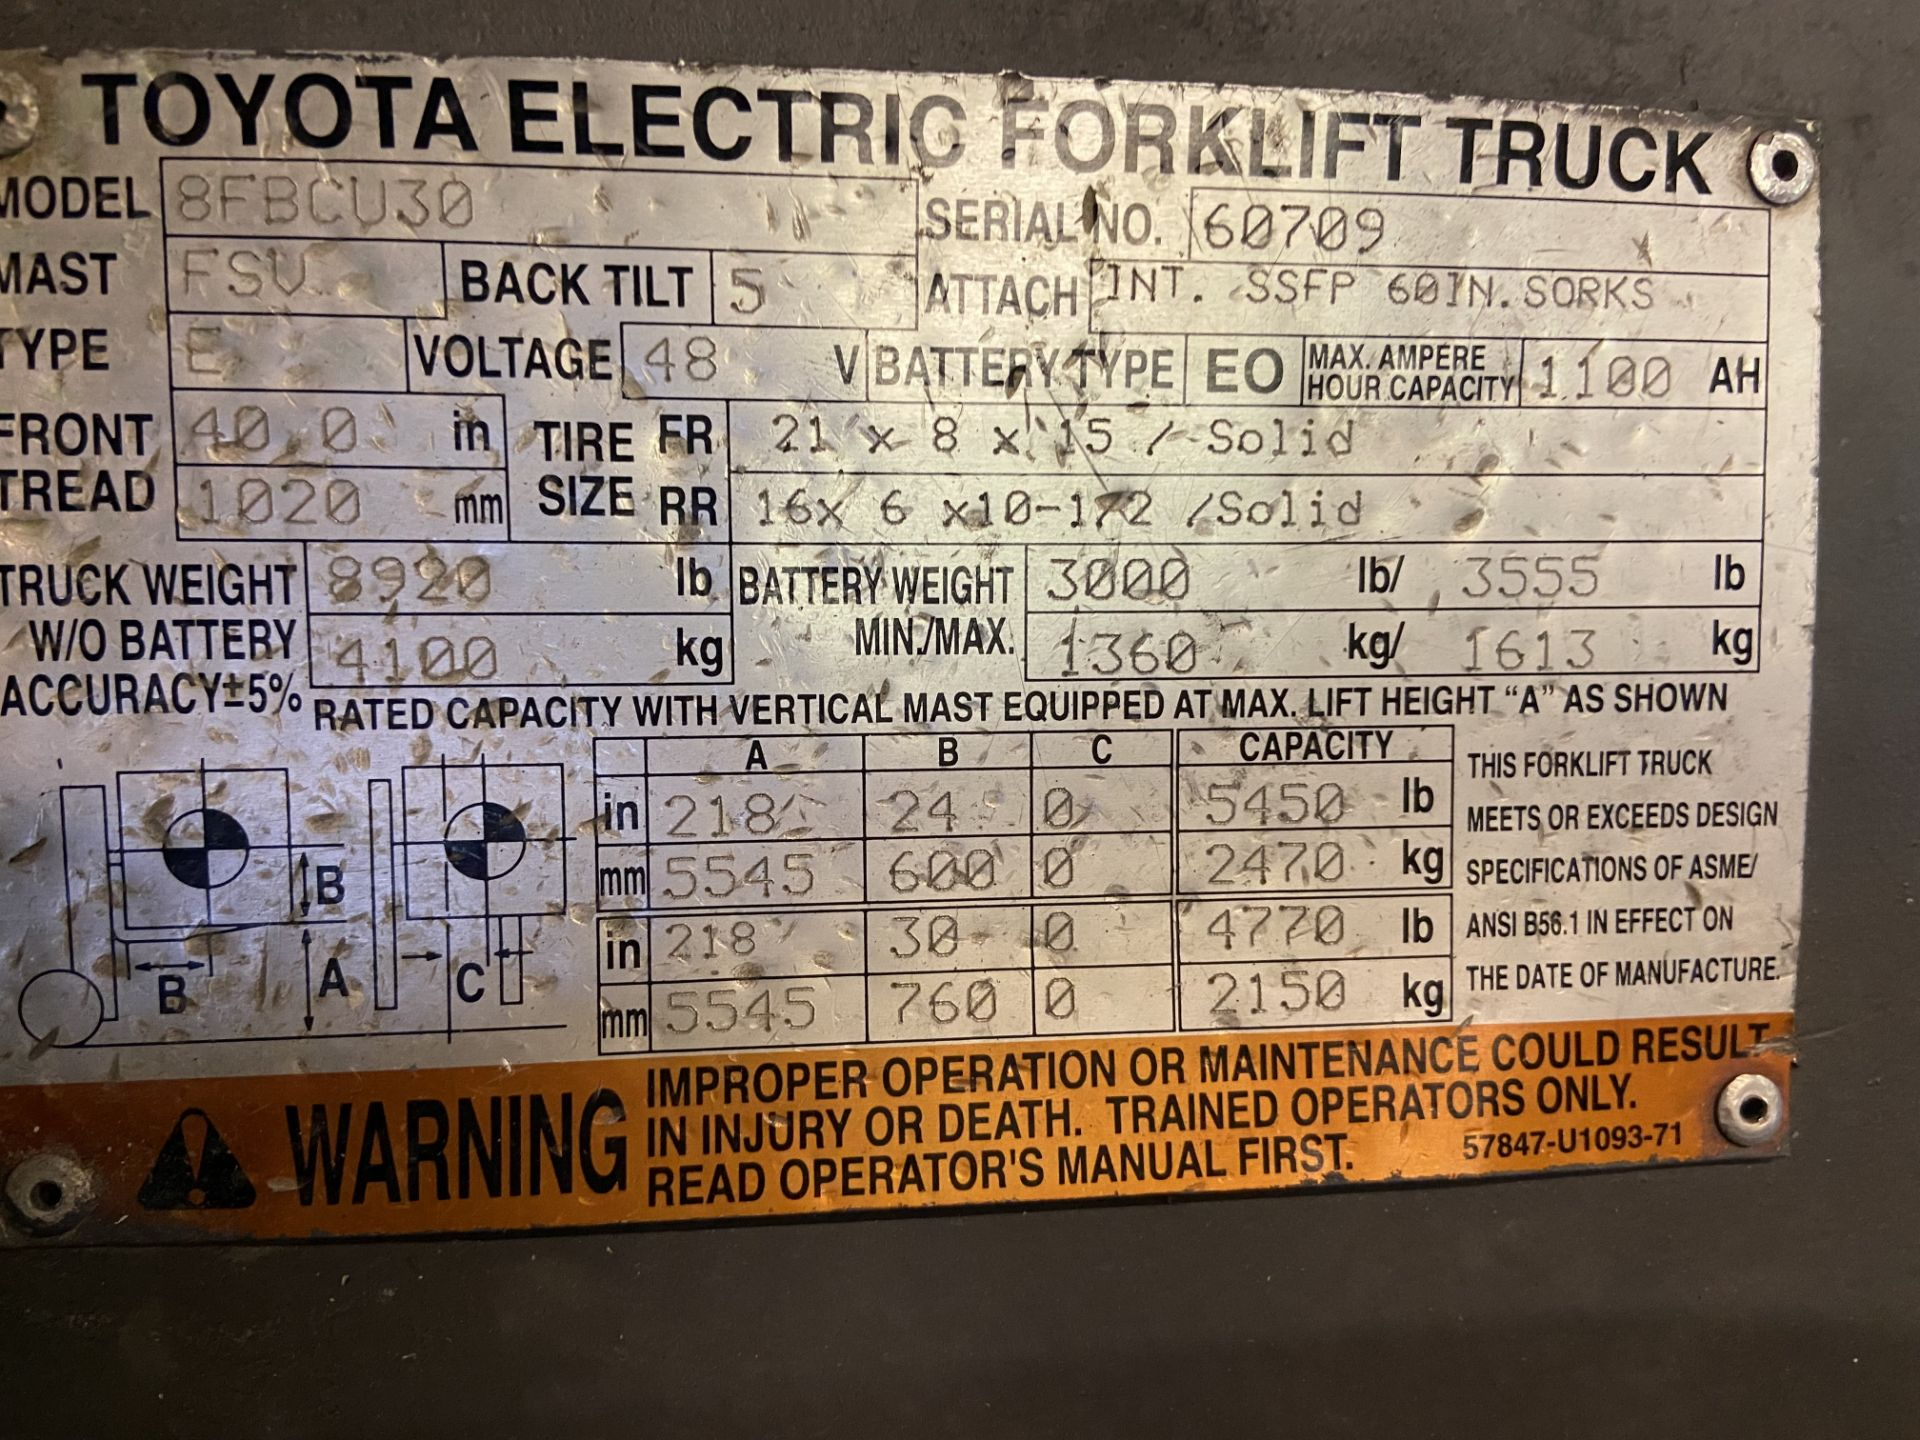 Toyota Electric Forklift Truck, Model# 8FBCU30, Serial# 60709, Truck Weight 8920 lbs, 12,273.2 - Image 3 of 7